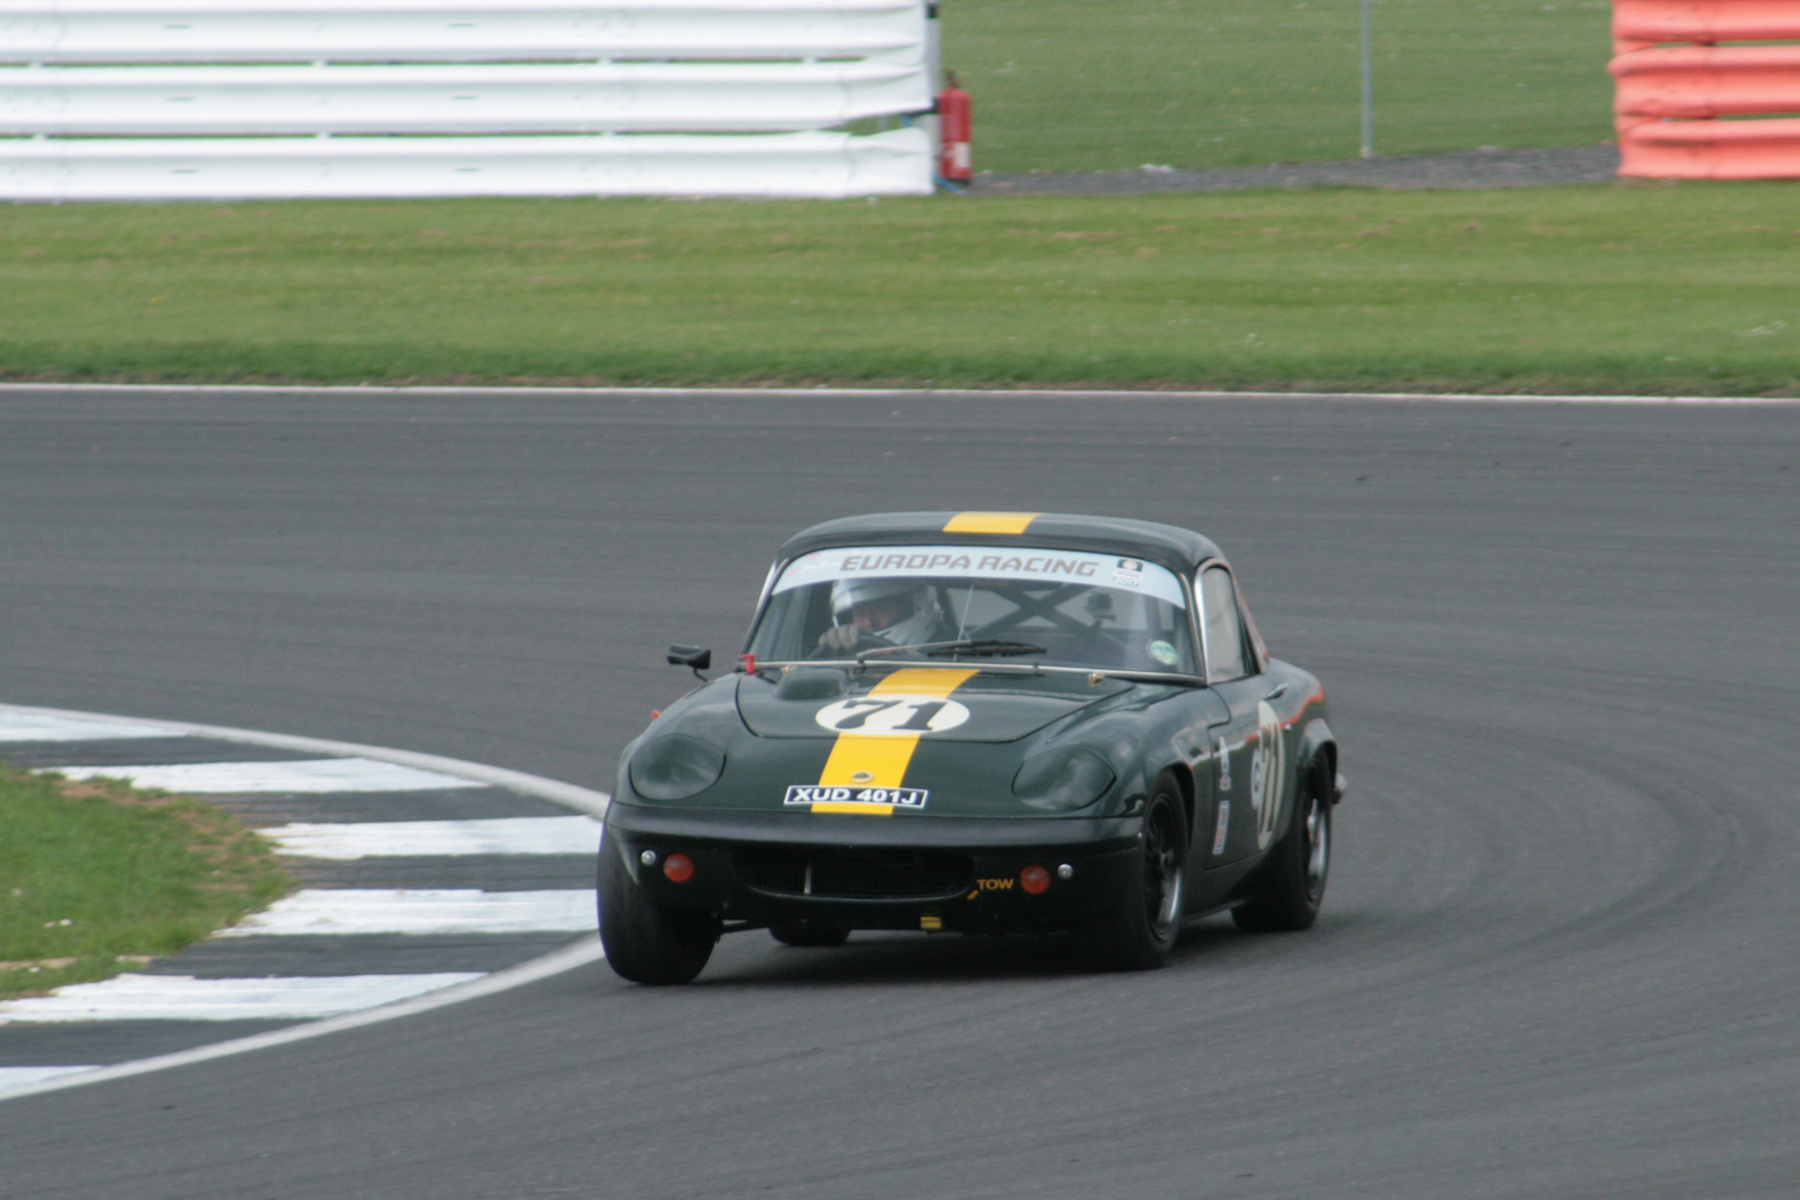 A potential podium place was sacrificed by the Jim Dean/Julian Barter Lotus Elan which received a penalty for pitting outside the pit stop window. It was classified 7th . Photo - John Turner